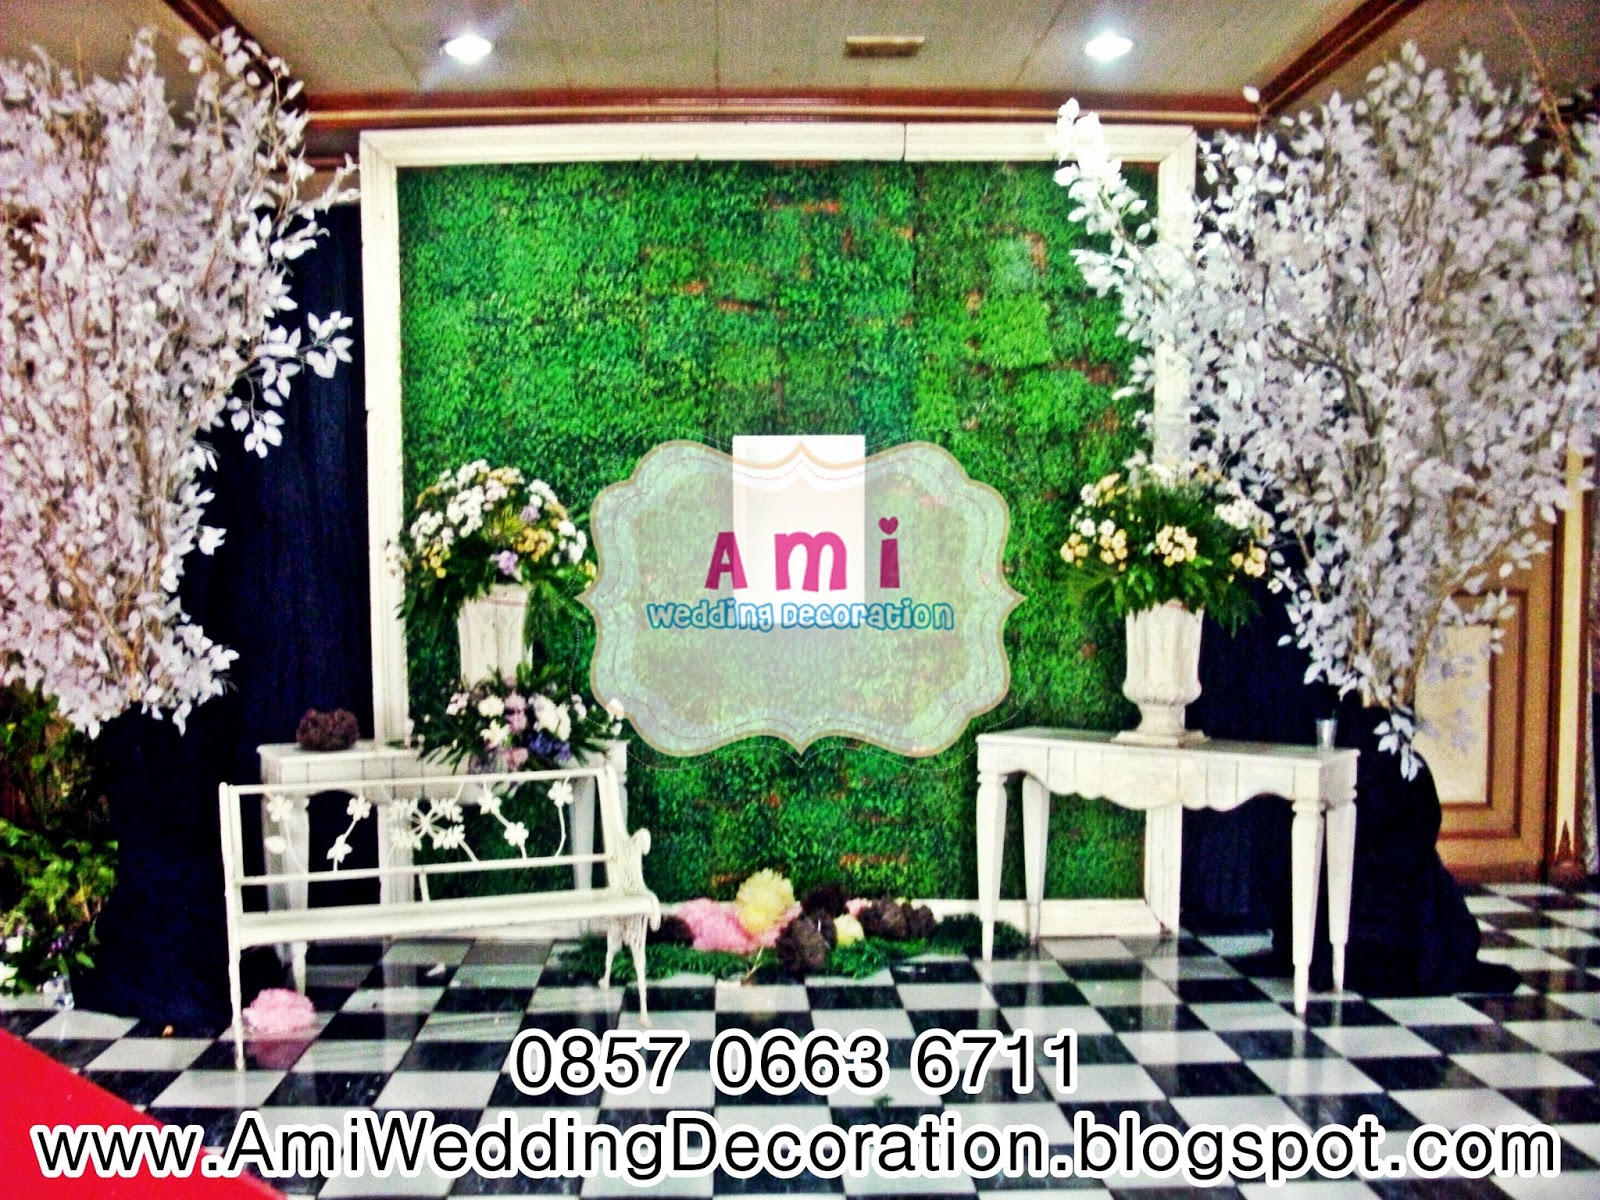 Wedding decoration murah di surabaya images wedding dress wedding decoration murah di surabaya choice image wedding dress creative decoration wedding surabaya choice image wedding junglespirit Gallery